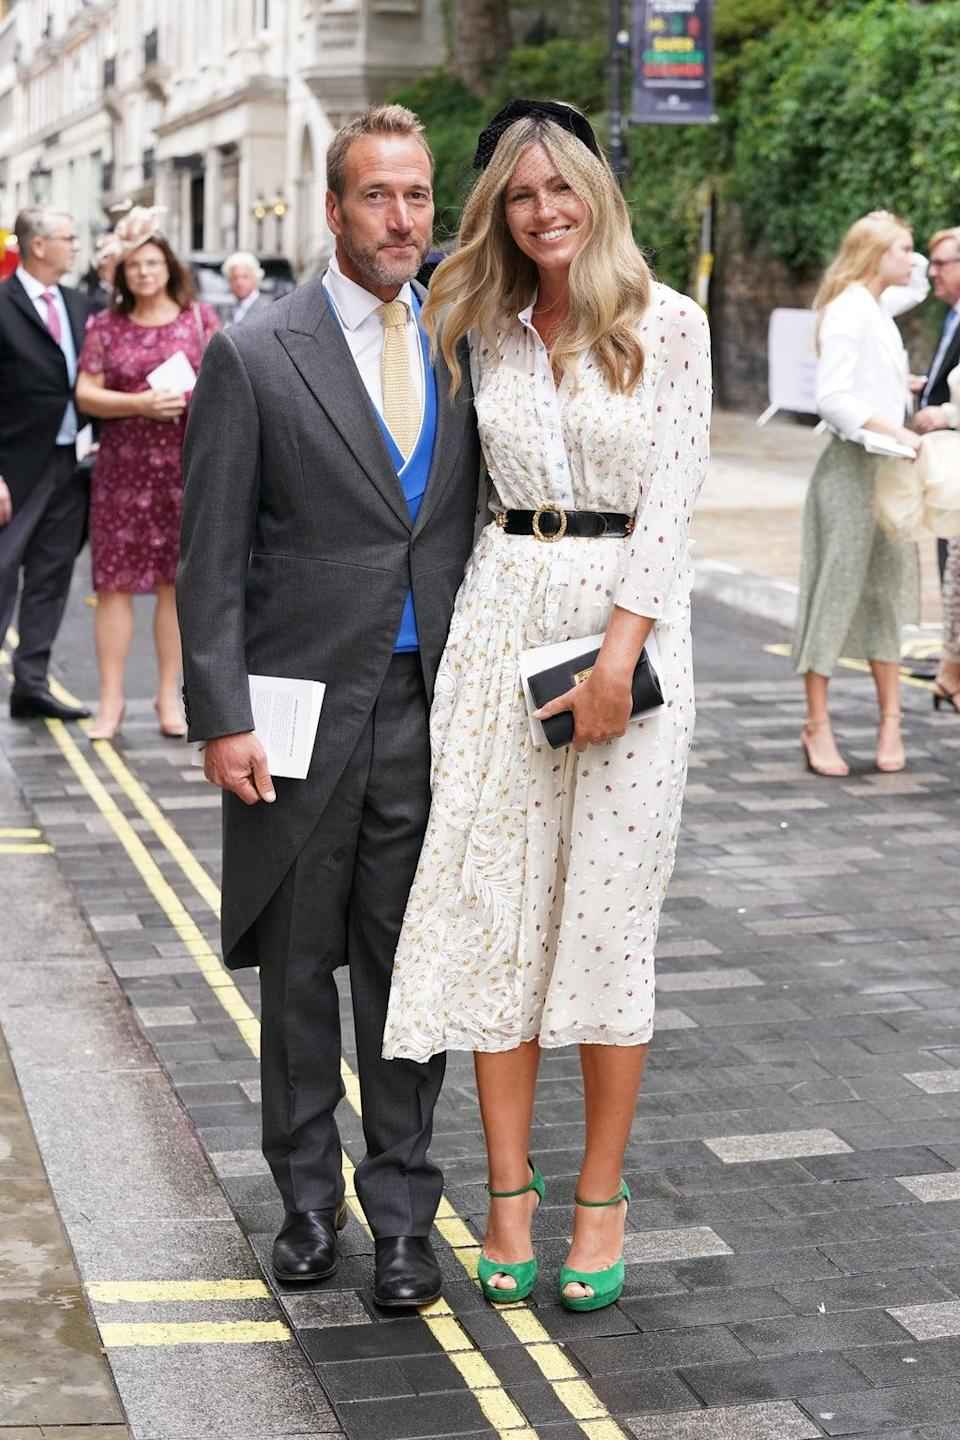 TV presenter Ben Fogle was also pictured at the ceremony with his wife Marina (PA). (PA Wire)